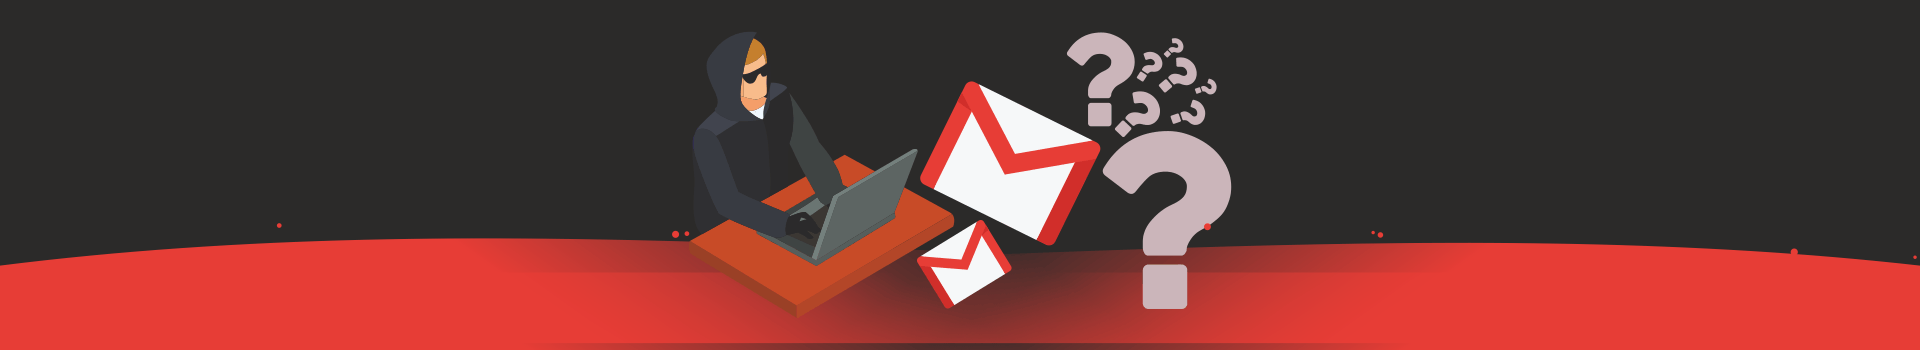 Is my Gmail Hacked? How to Tell and Find out in 4 Steps